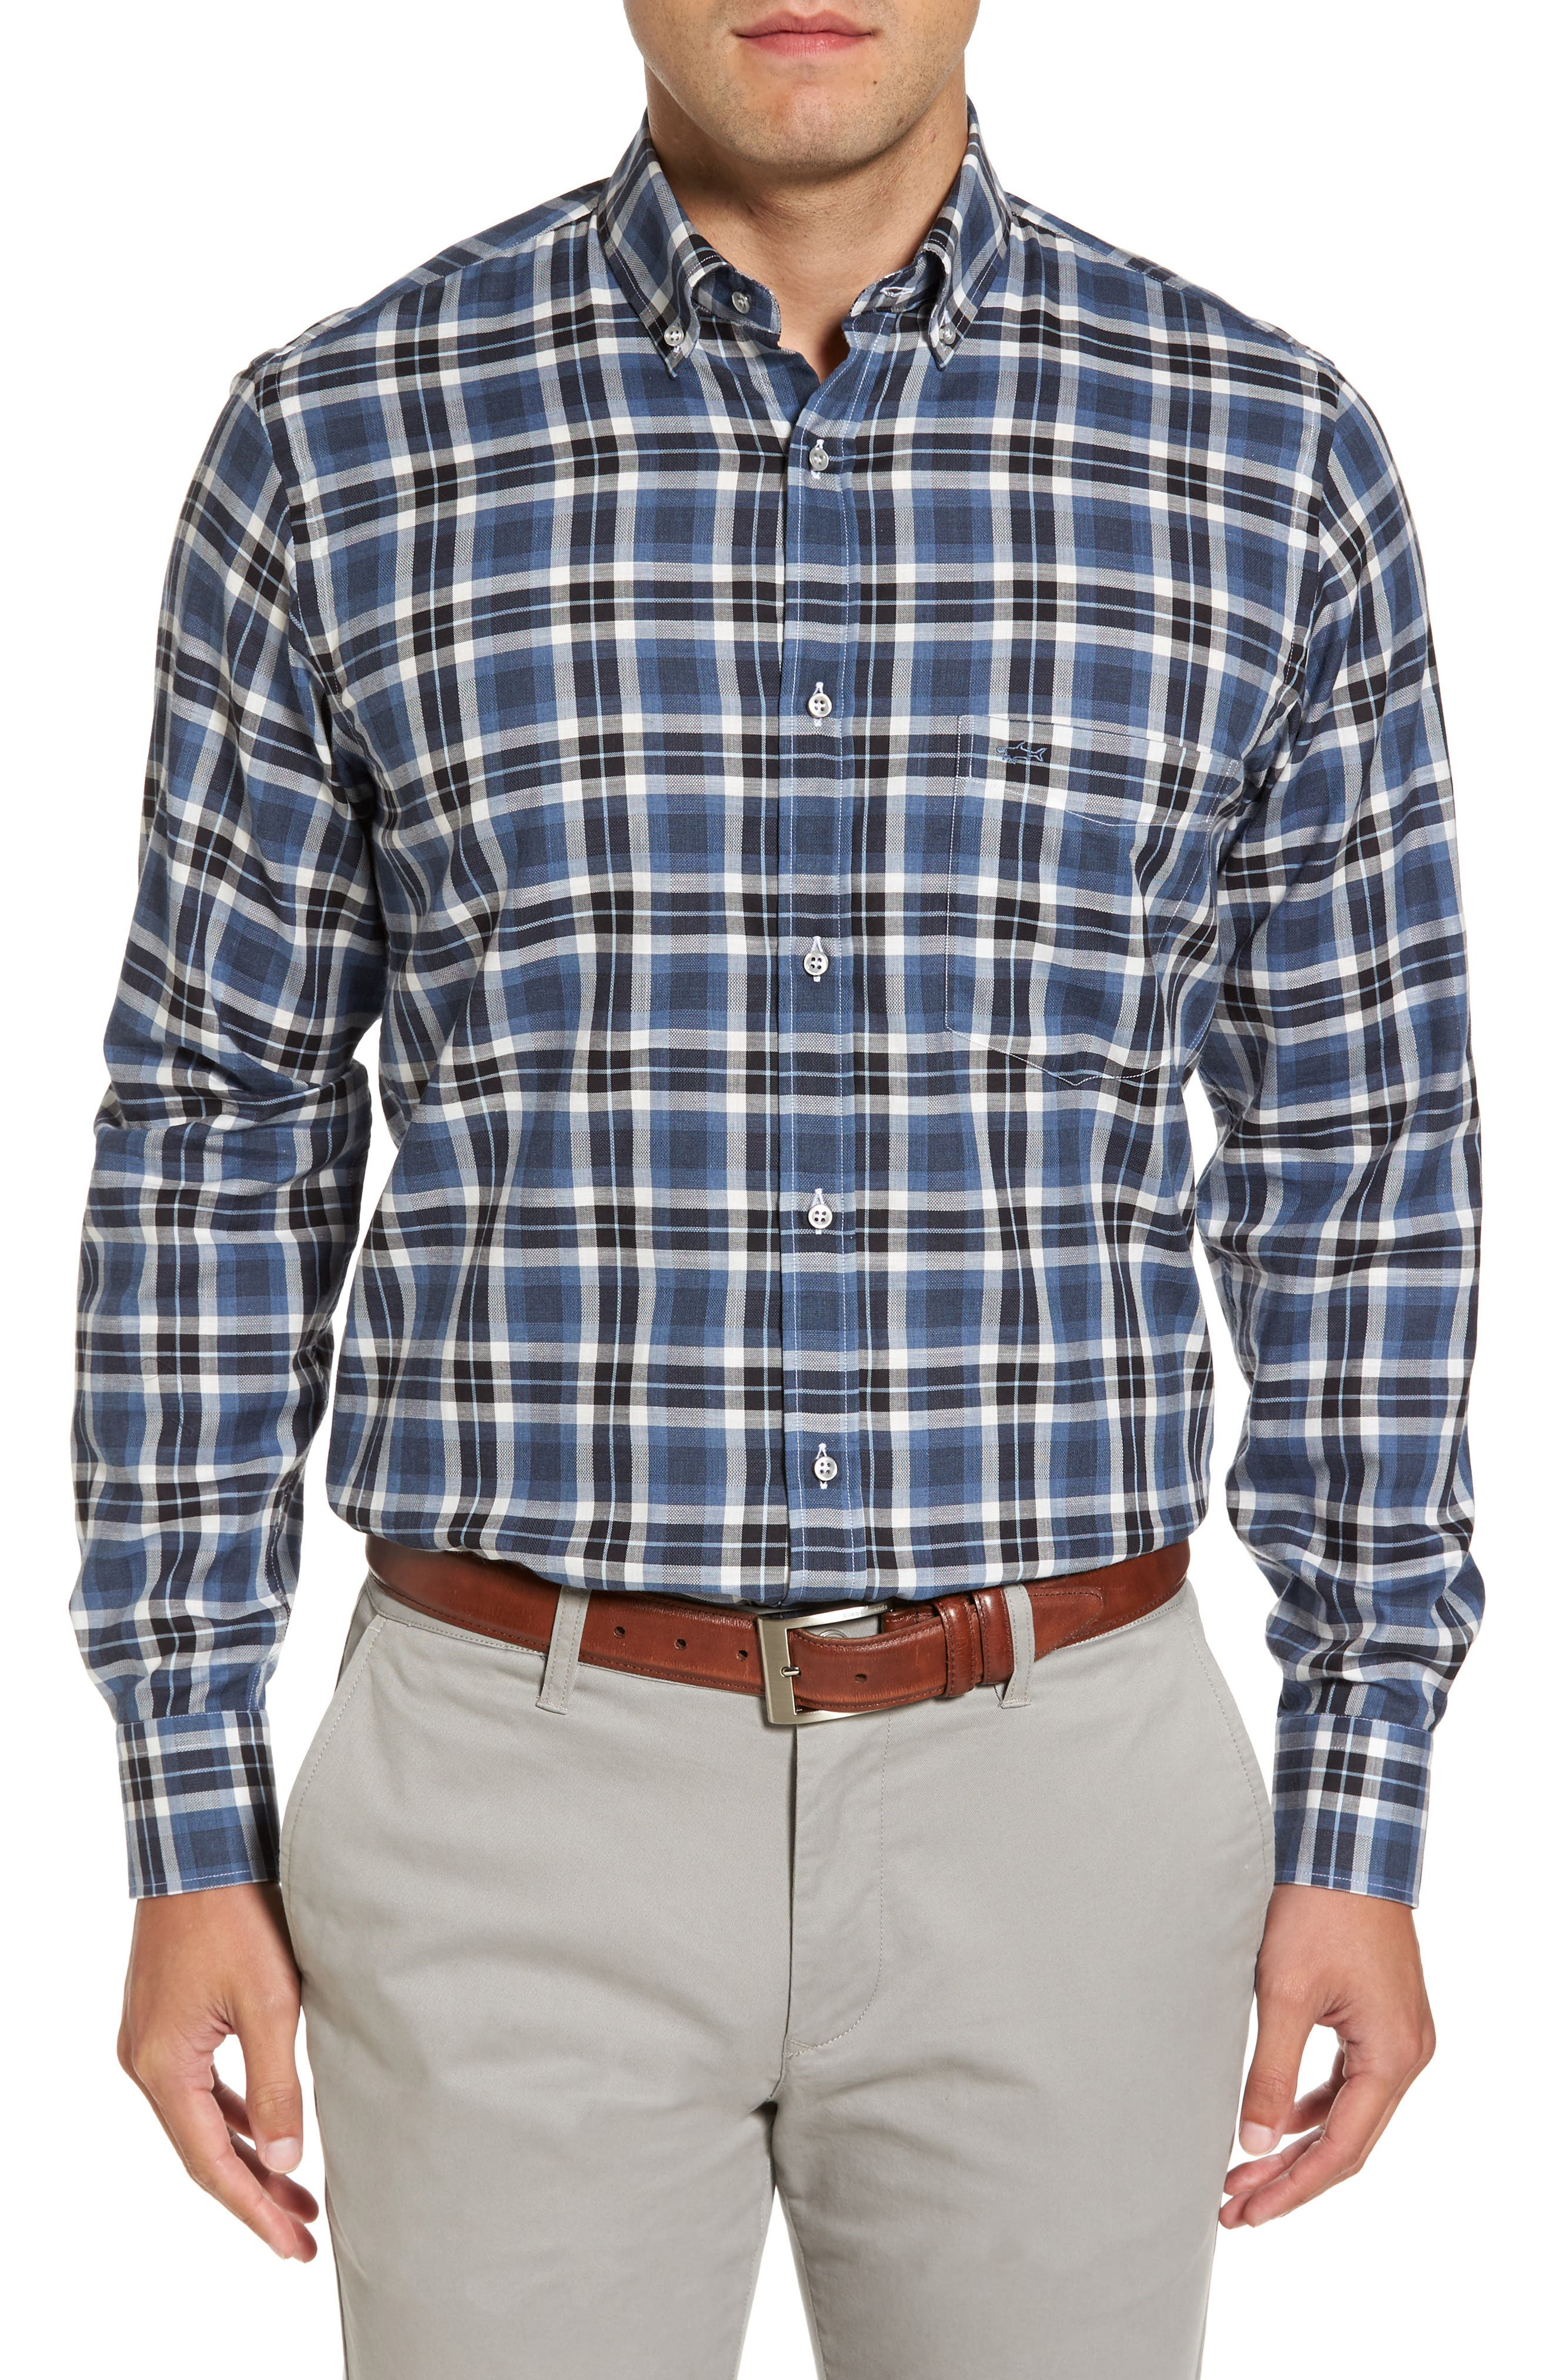 Paul&Shark Silver Collection Plaid Sport Shirt,                         Main,                         color, 400